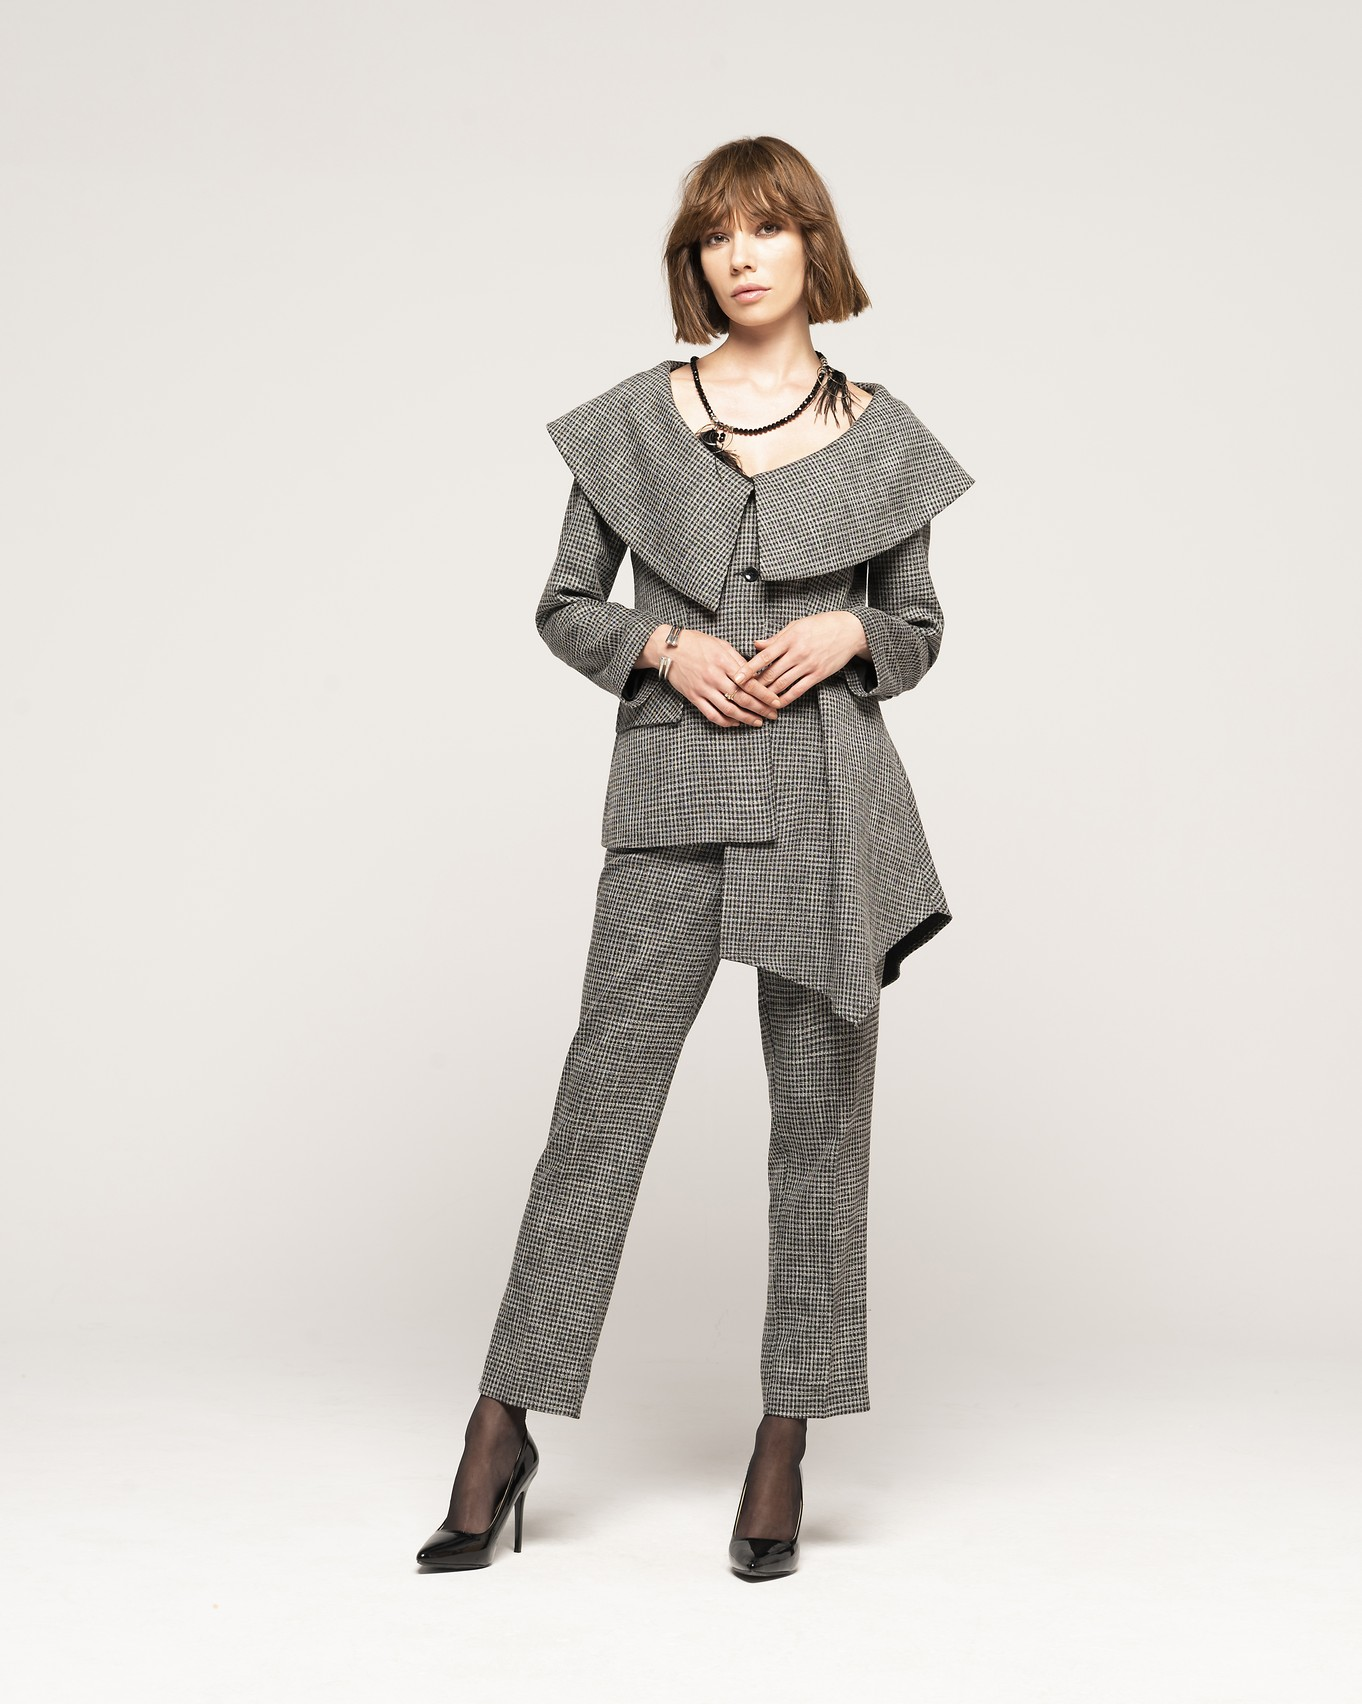 JACKET 602 - TROUSERS 103 - NECKLACE C365.jpg